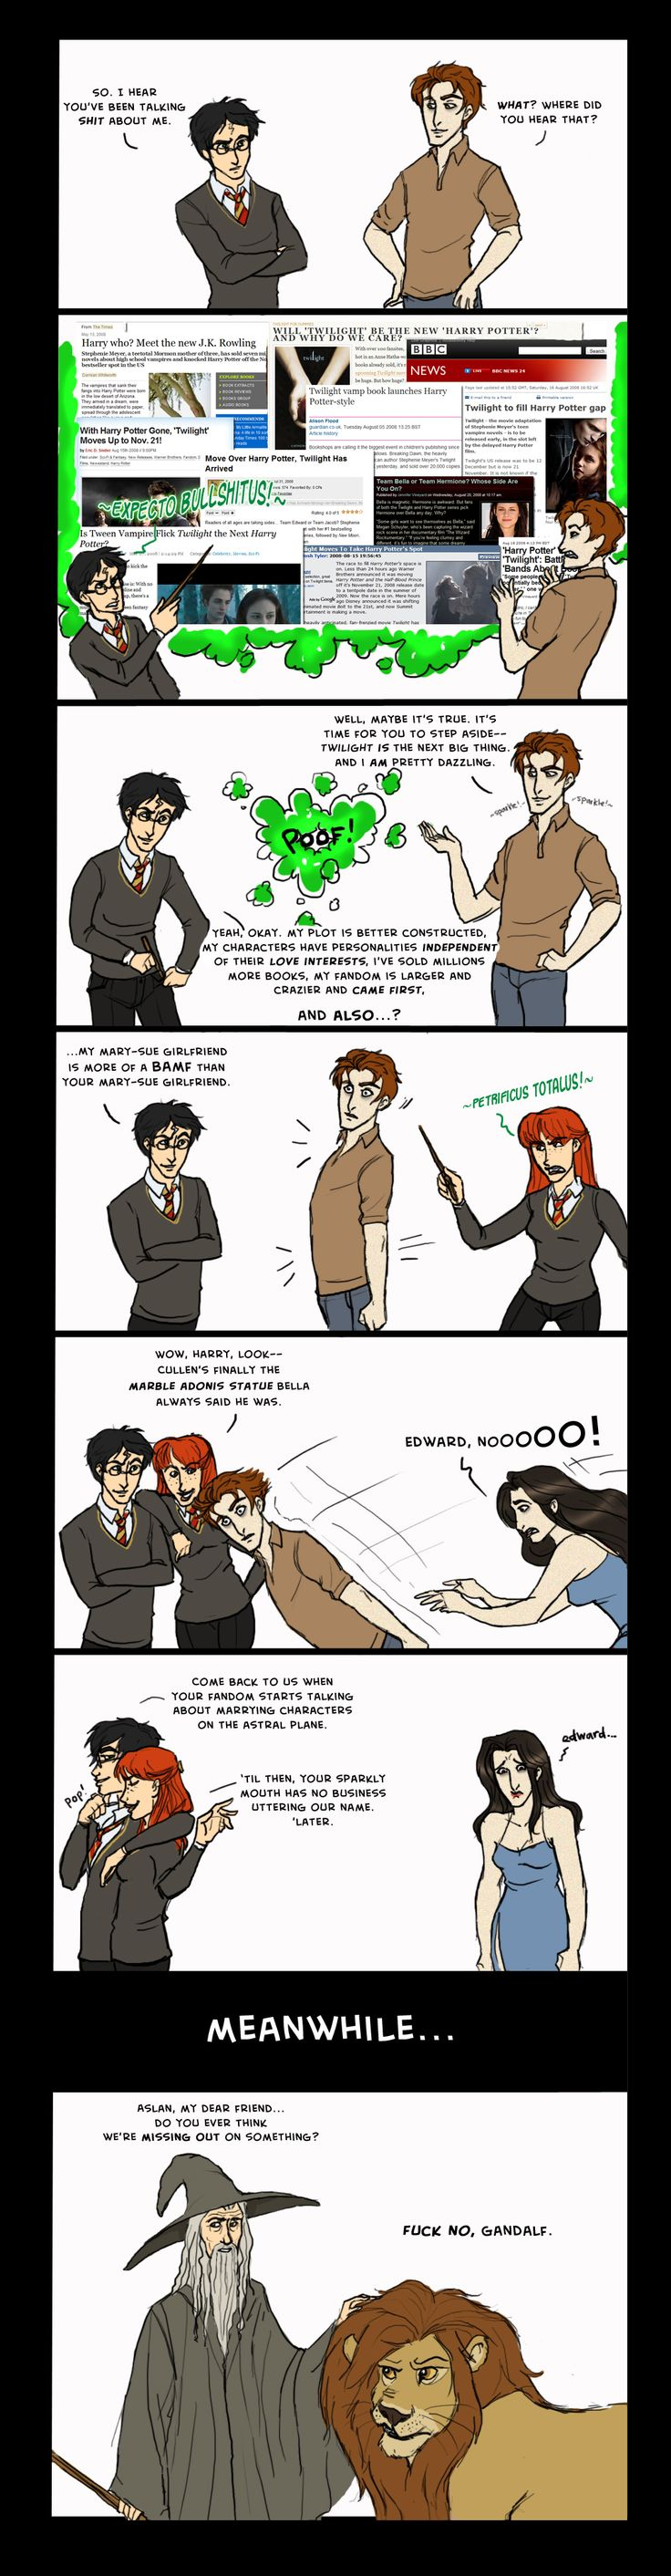 337 best images about harry and ginny on pinterest harry birthday - Day Twilight V Harry Potter I Am Too Disgusted With This Day To React If I Had Known This Challenge Included A Mention Of Twilight I Wouldn T Have